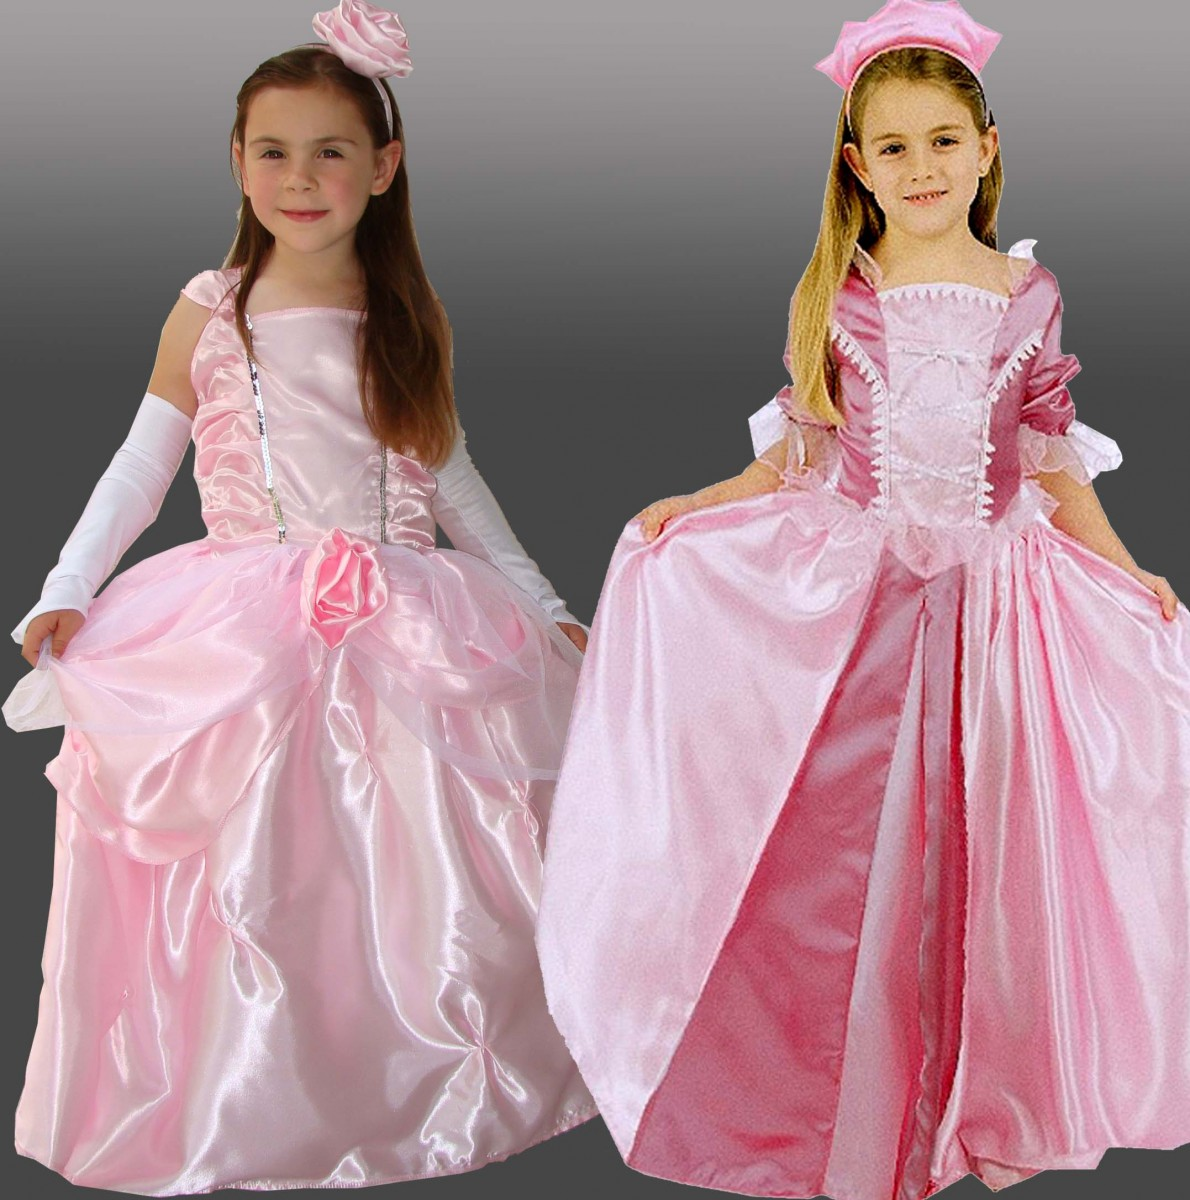 Charmant Prinzessin Kleid Vorlage Bilder - Entry Level Resume ...